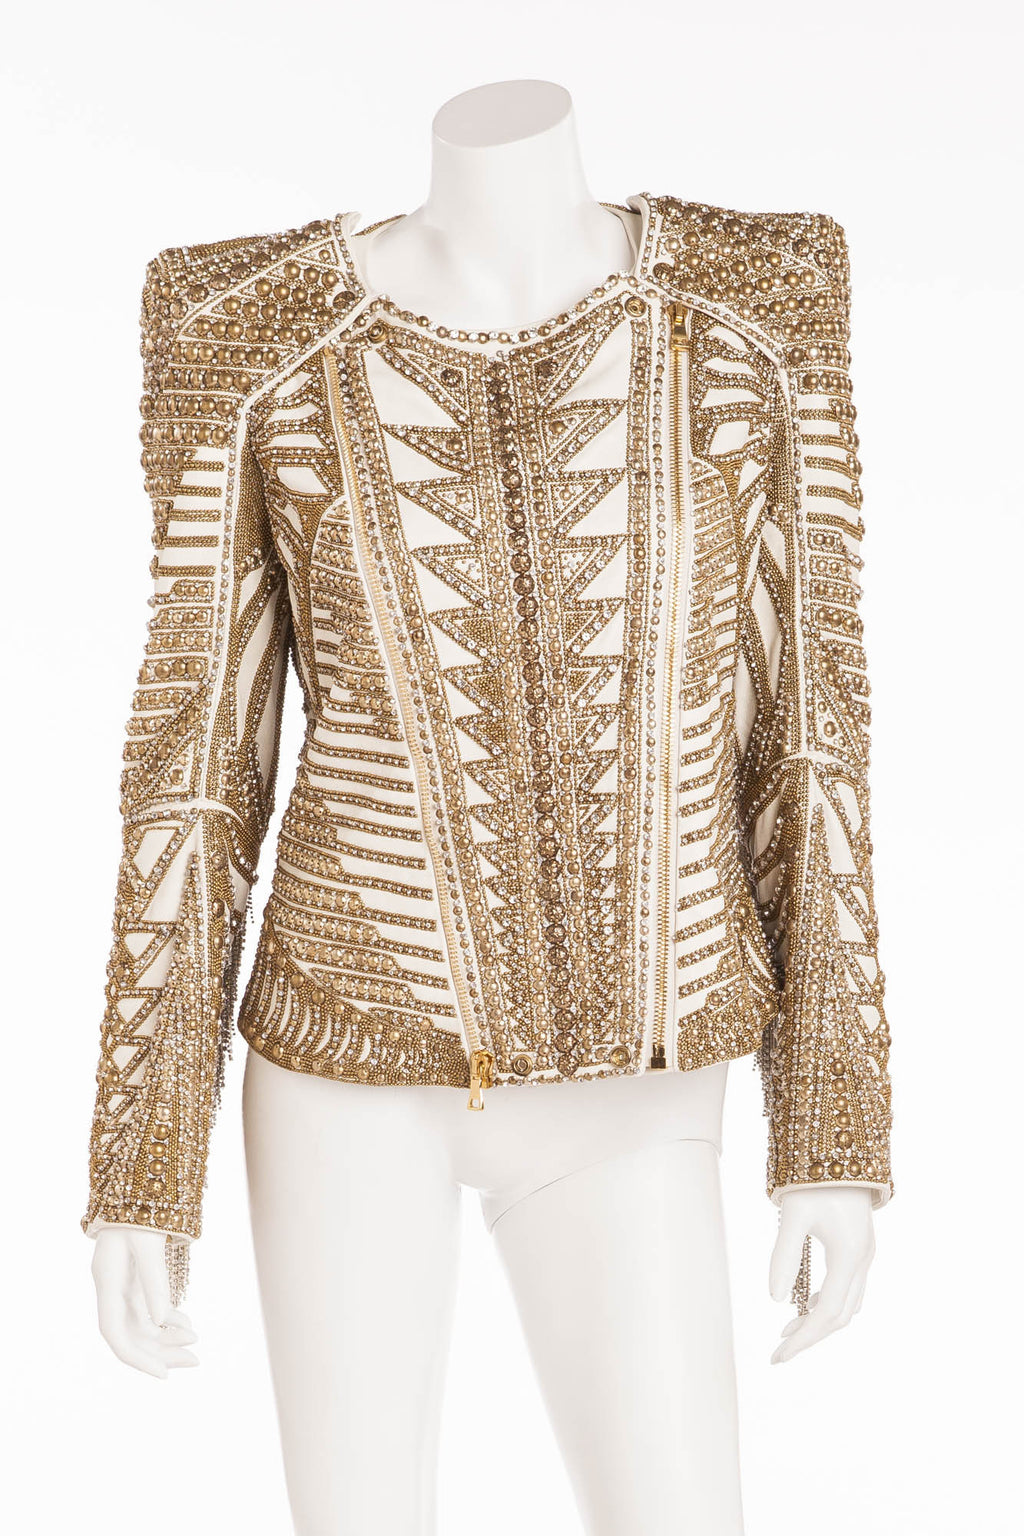 Balmain - Editorial Unique New With Tags White Leather Jacket with Gold Embellishments and Rhinestone Fringe - FR 42